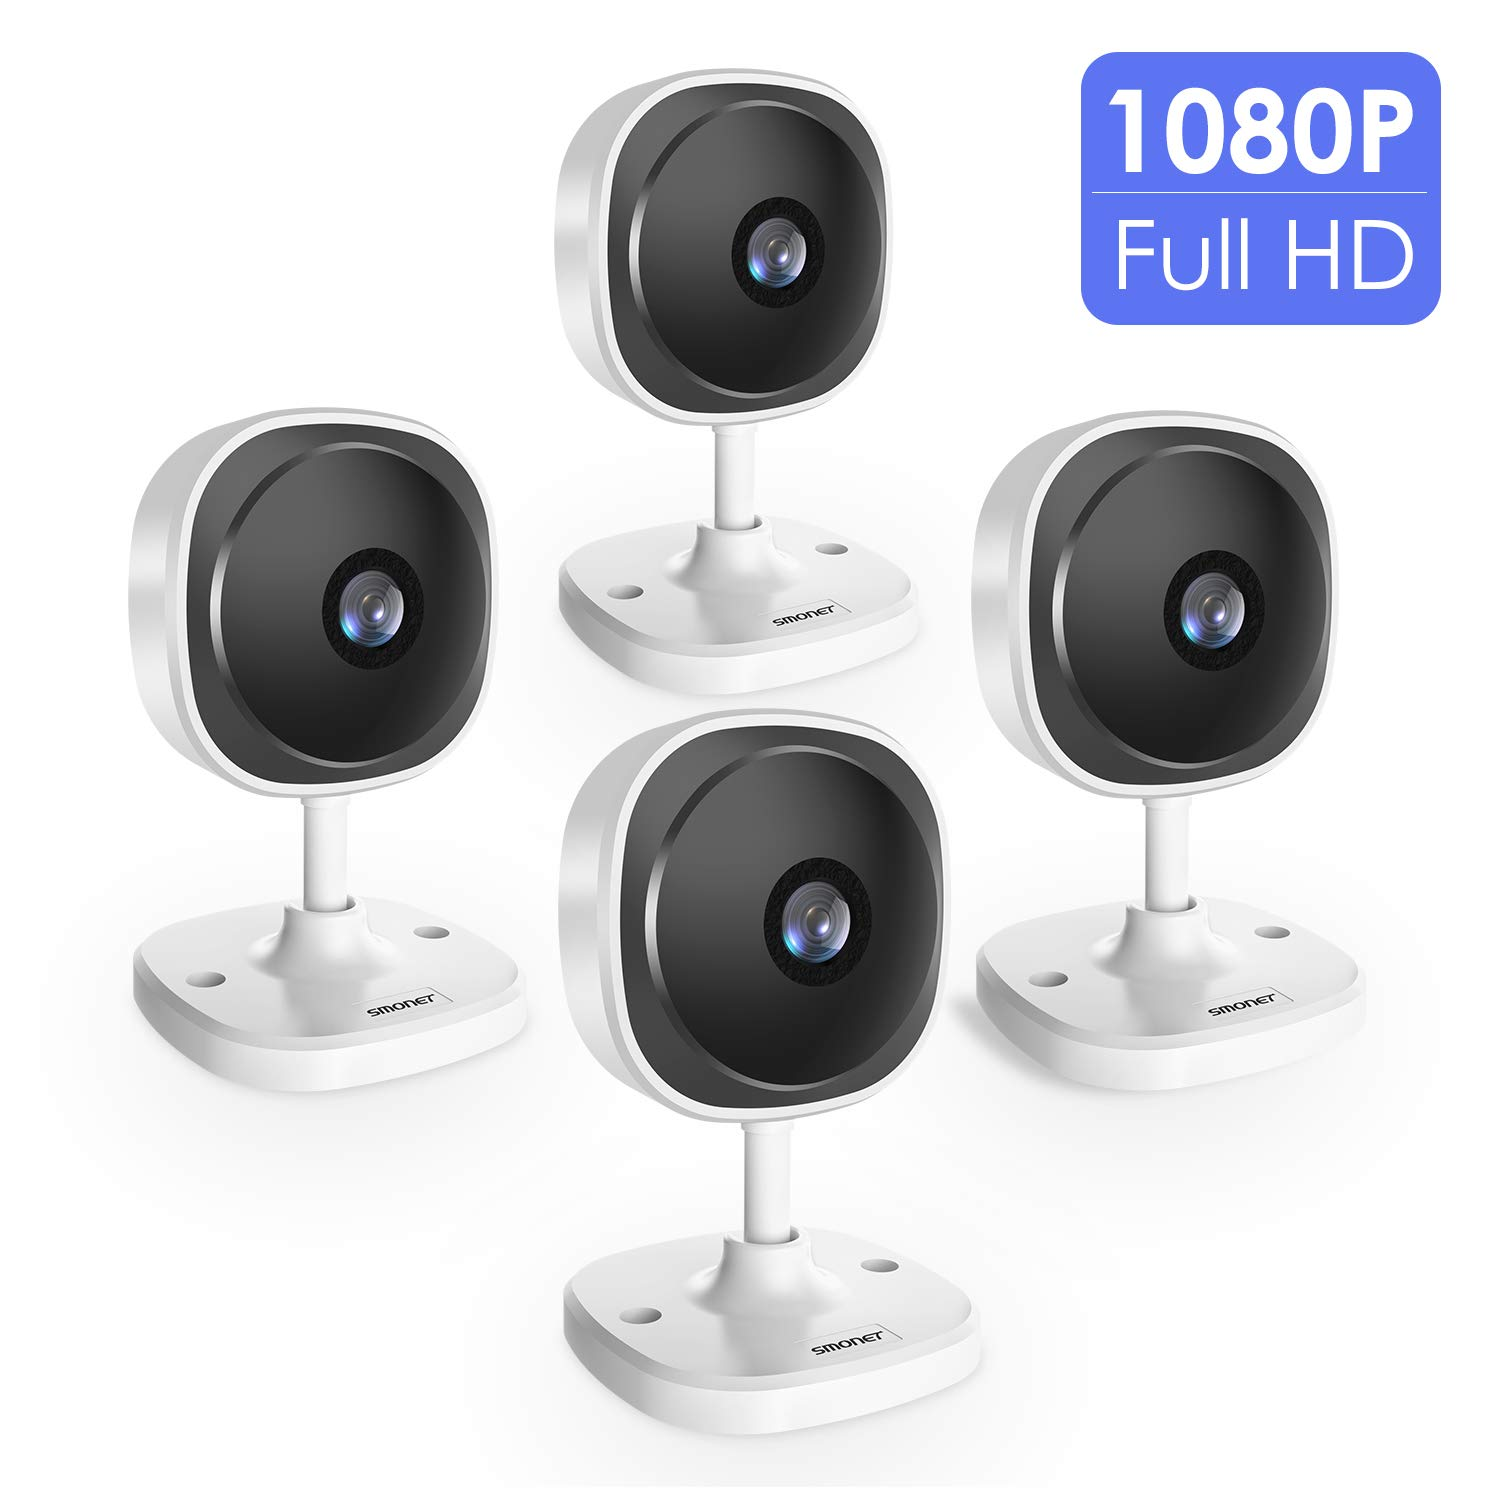 1080P Wireless Security Camera, SMONET 180 Degree Panoramic IP Camera, Home Surveillance Camera with Two-Way Audio, Motion Detection, Night Vision for Dog Cat Baby White-4 Packs